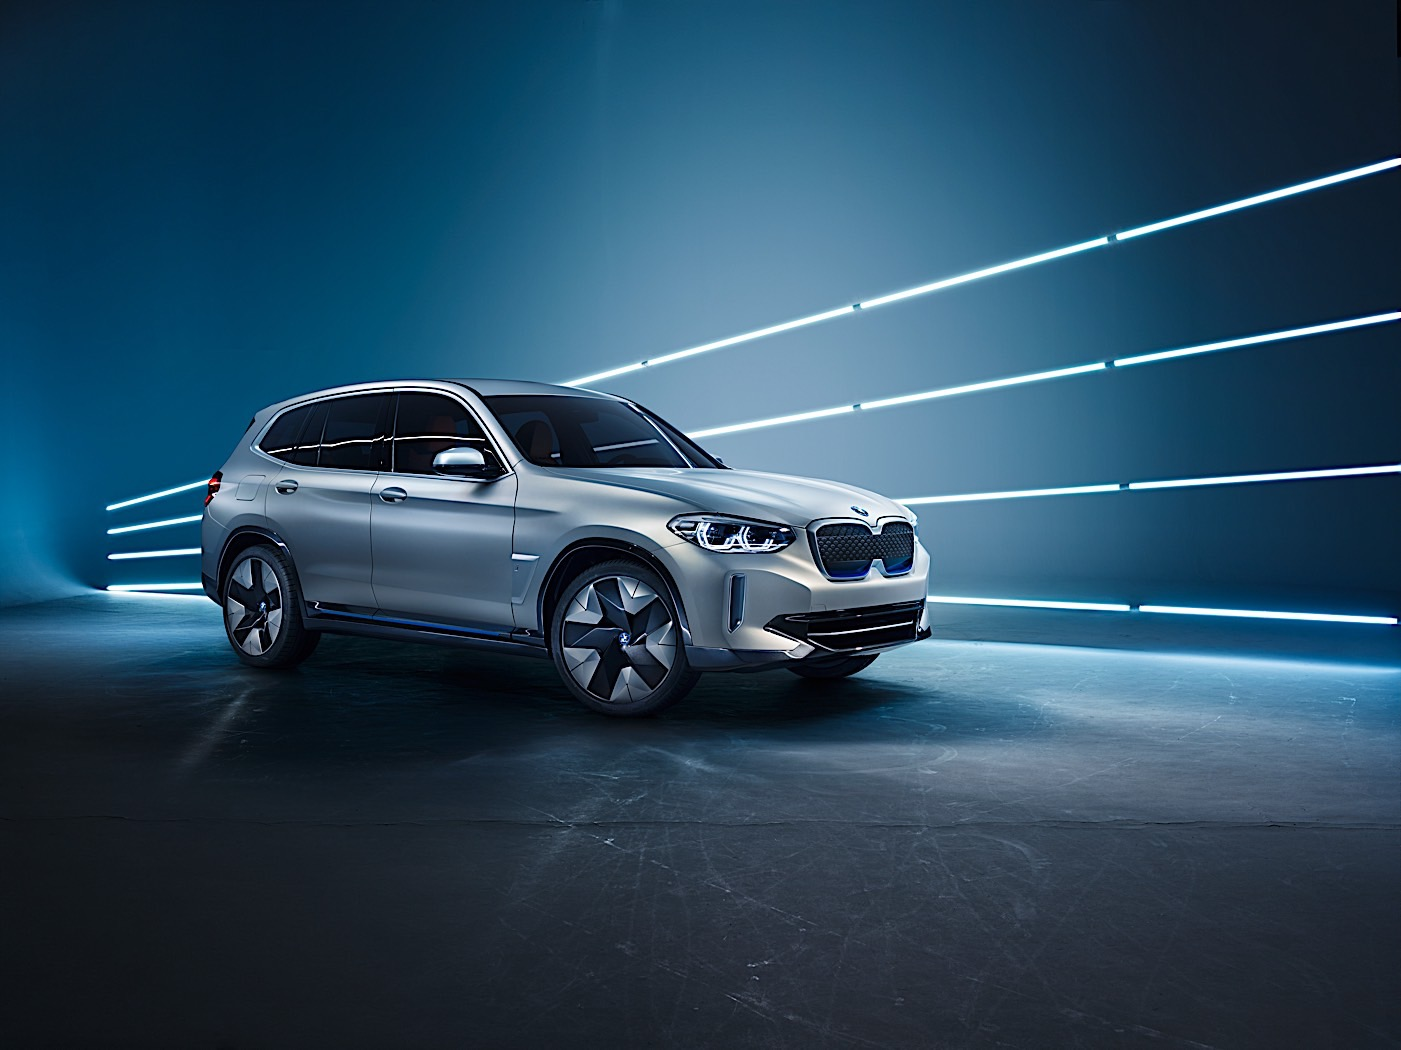 Bmw Ix3 Electric Suv To Be Built In China Autoevolution